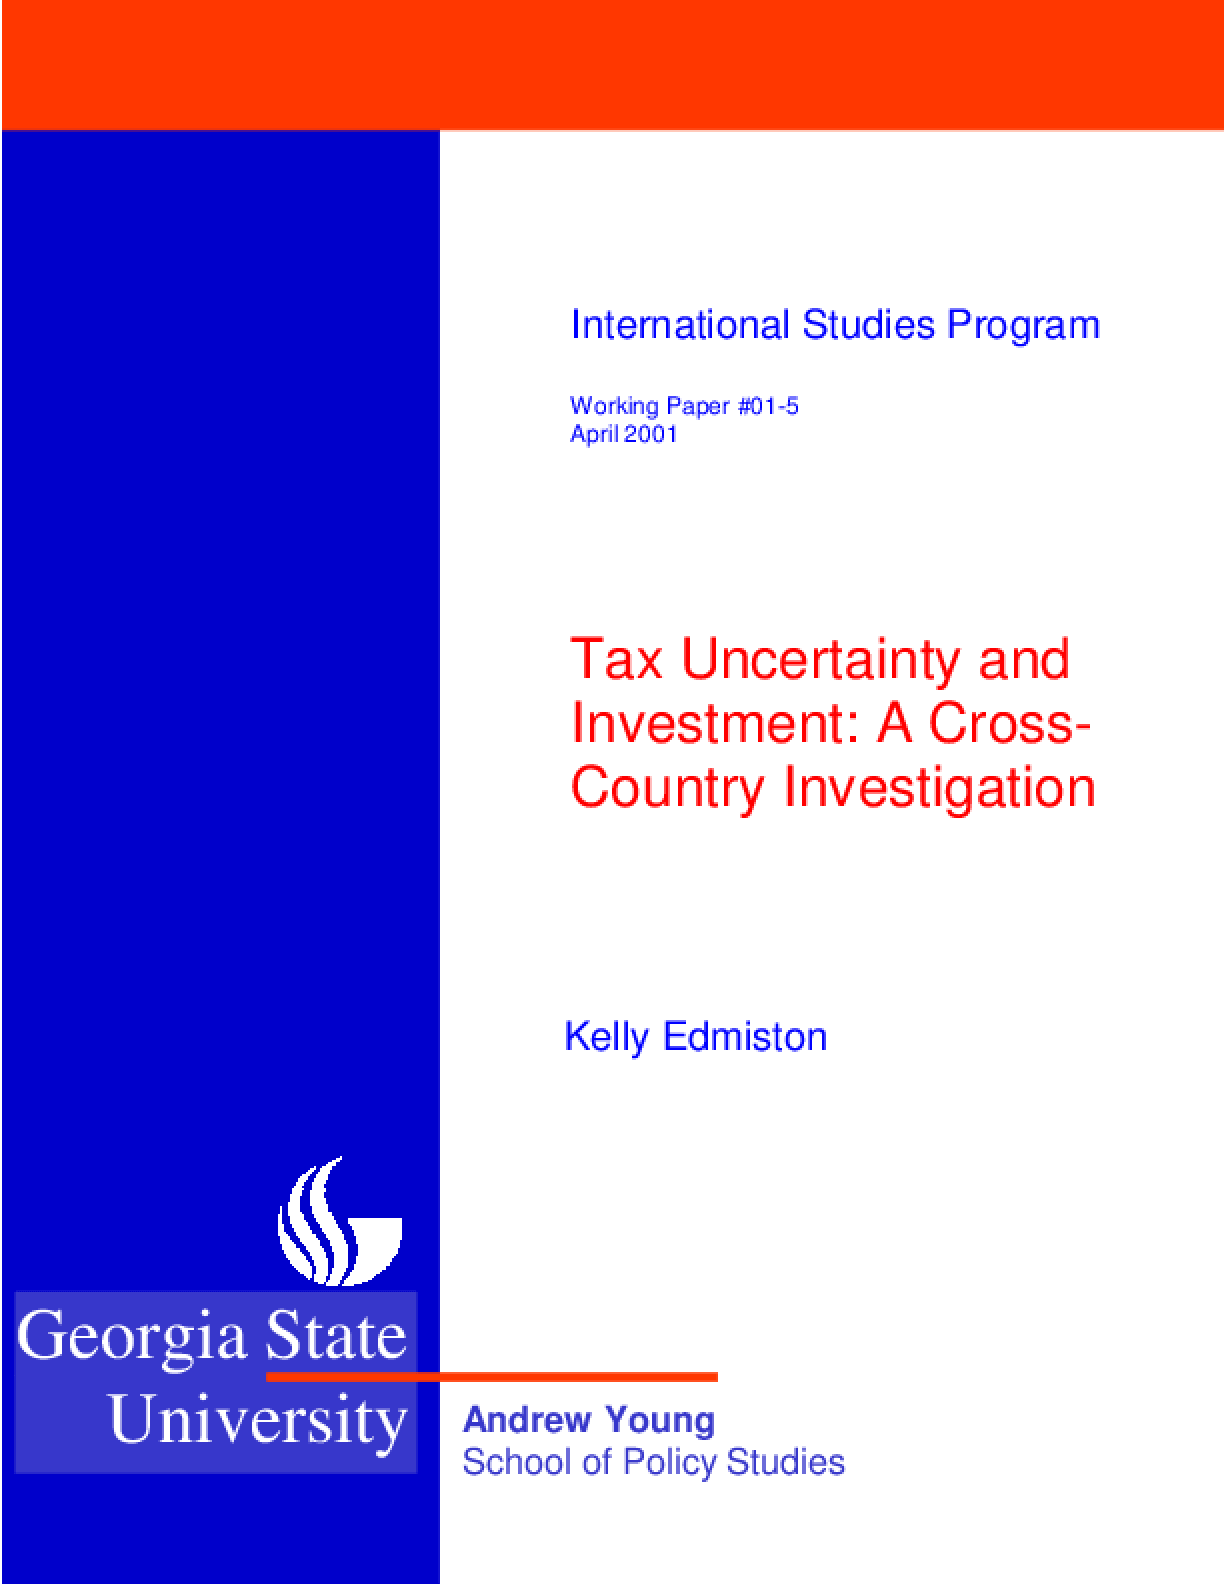 Tax Uncertainty and Investment: A Cross-Country Empirical Investigation